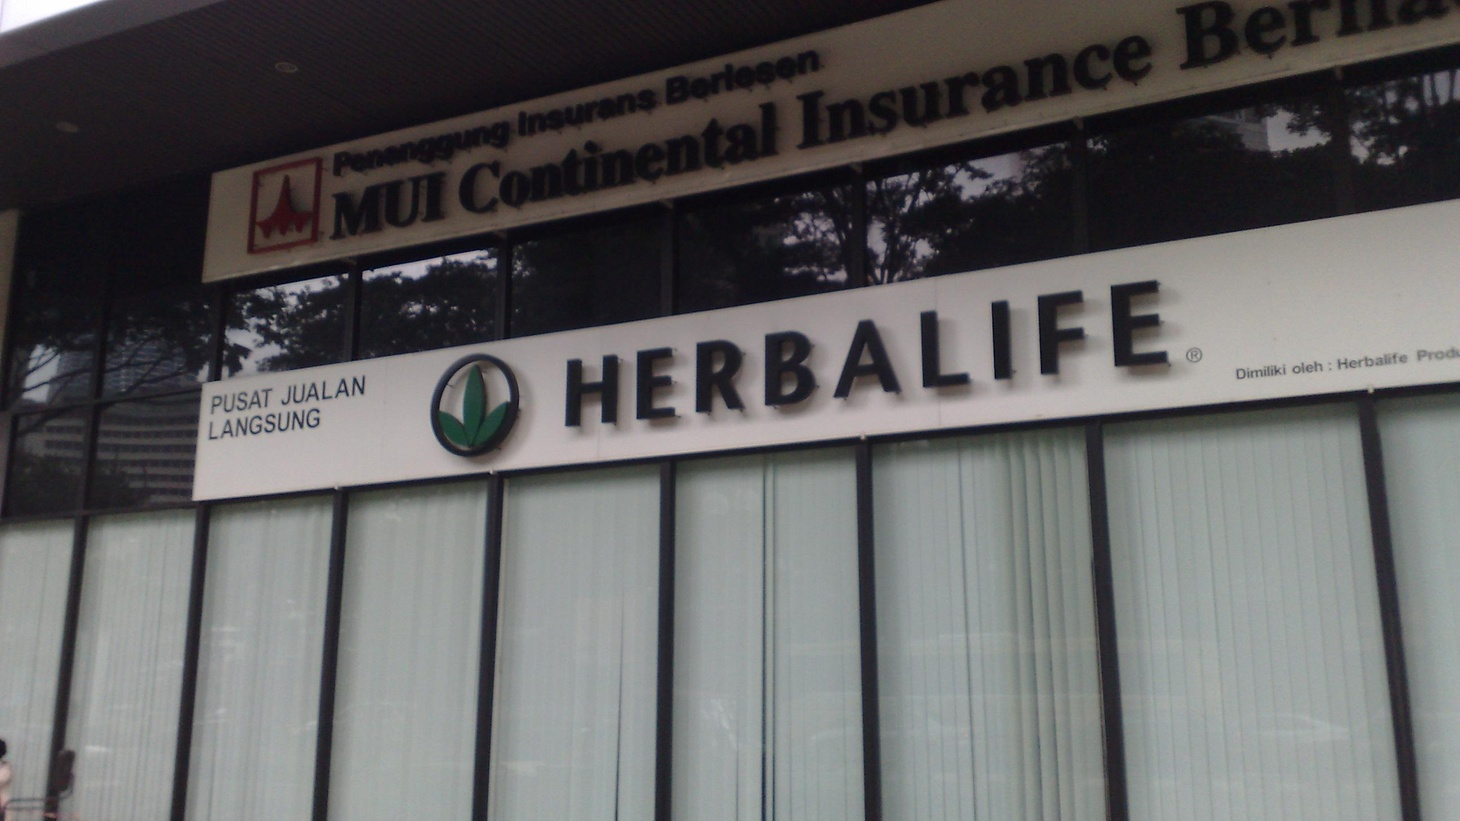 Is Herbalife a pyramid scheme? Why aren't more women taking science and technology jobs? What's the future of the funeral industry? And can the Lakers recover?